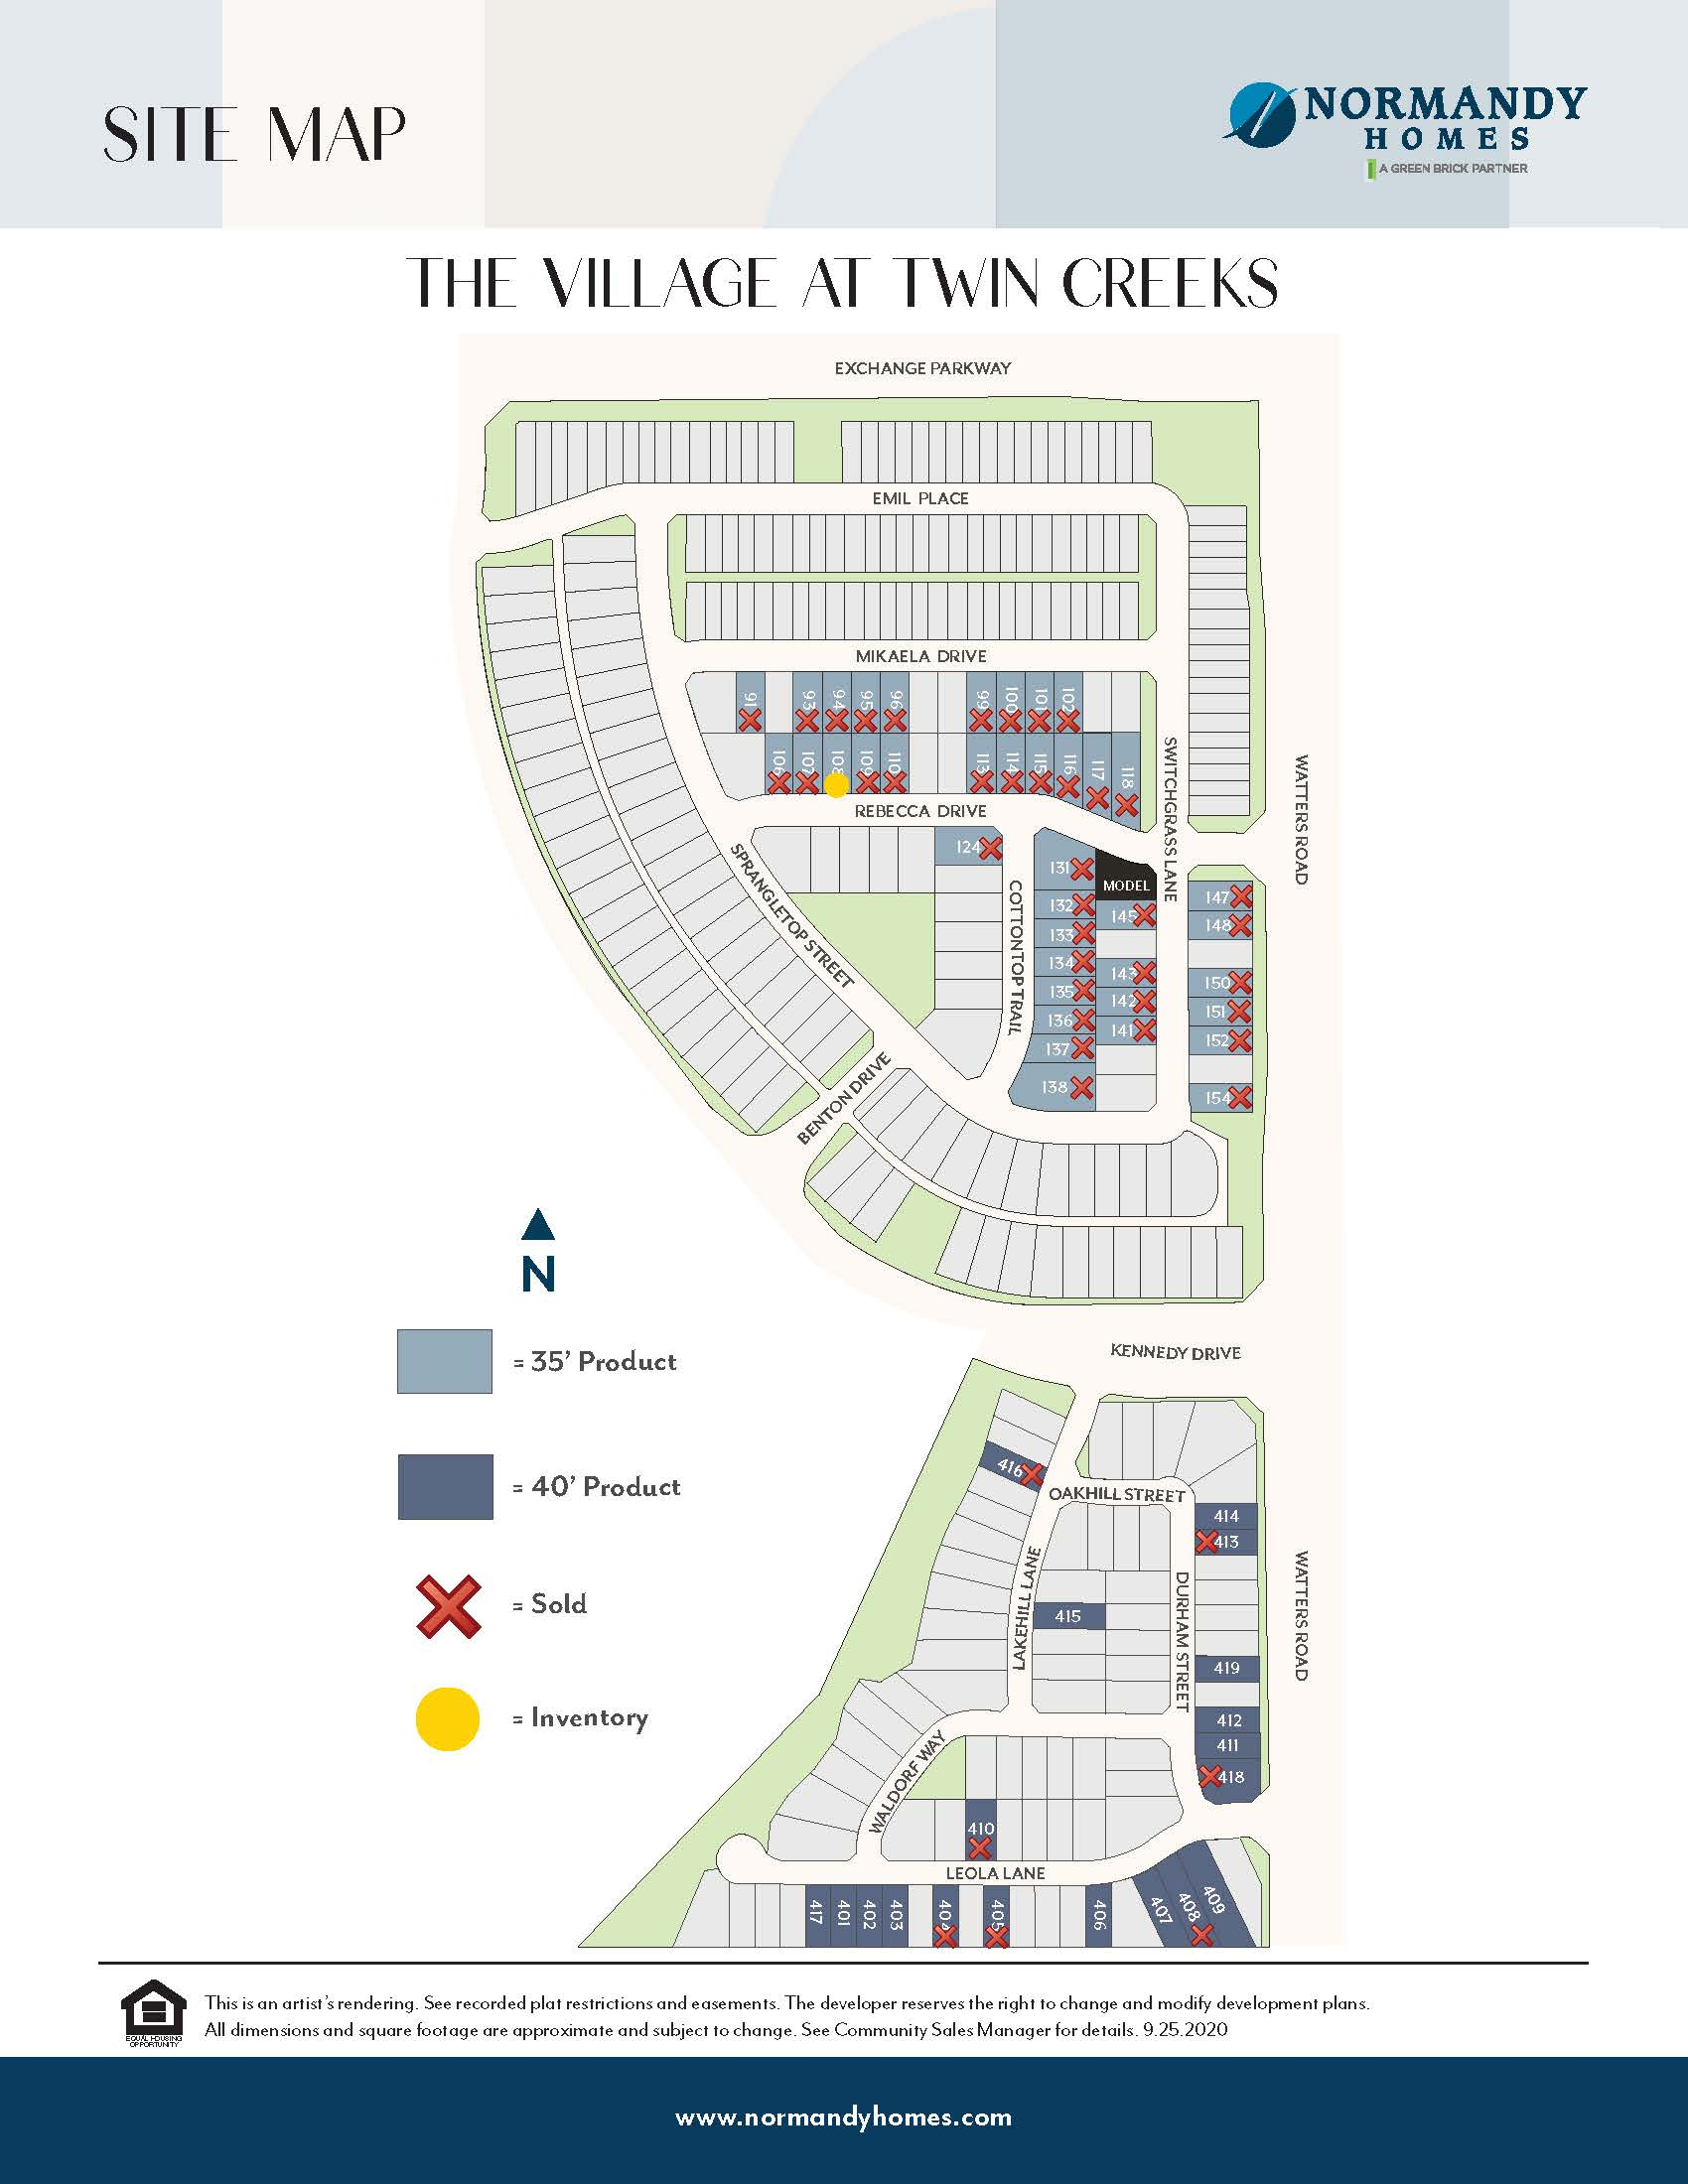 The Village at Twin Creeks Site Map